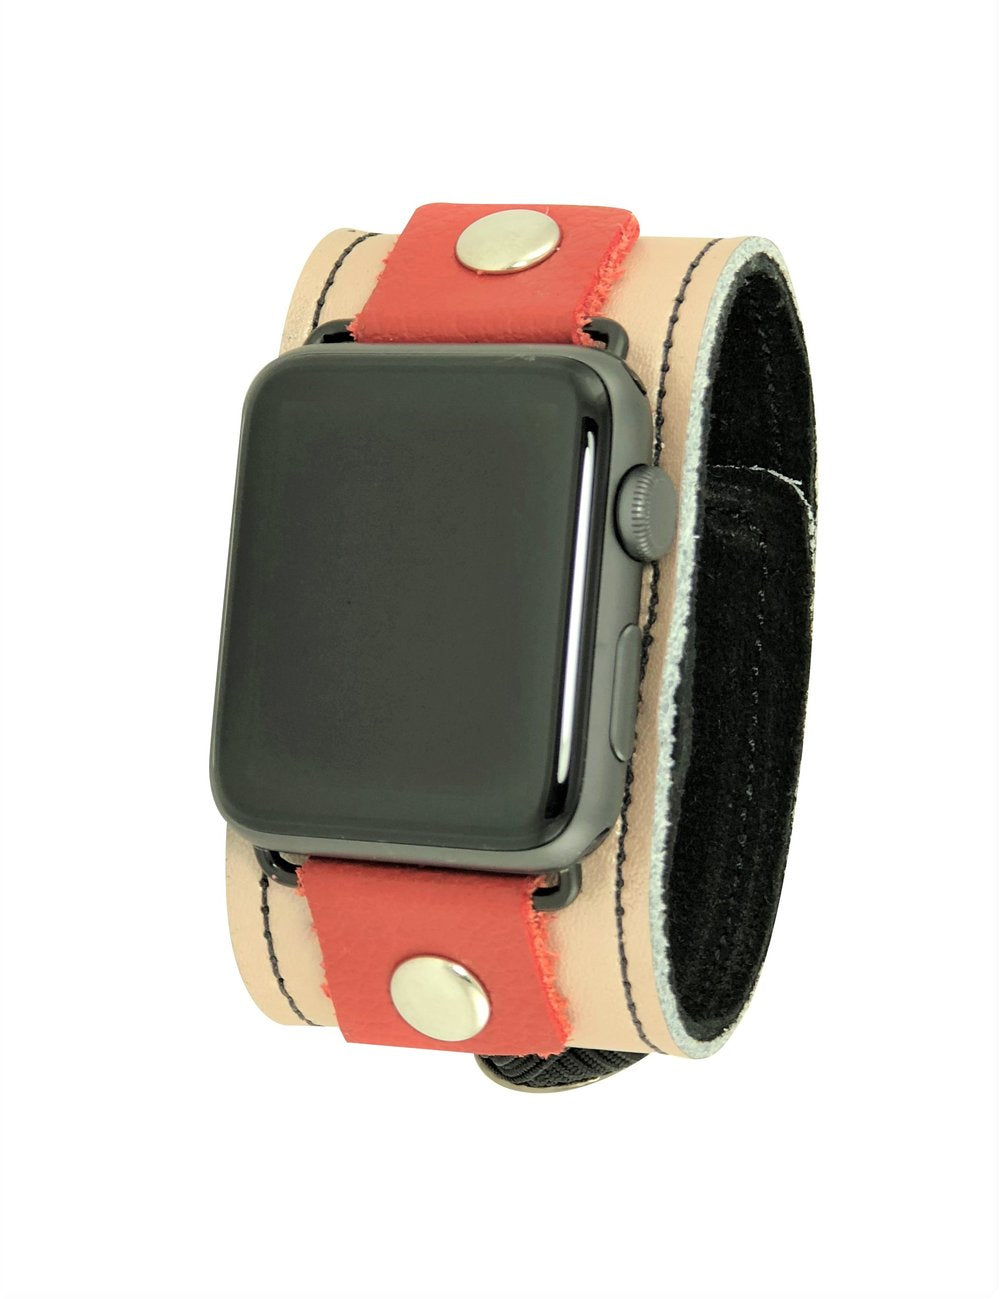 NAN Smart Watch Band - Tan & Red